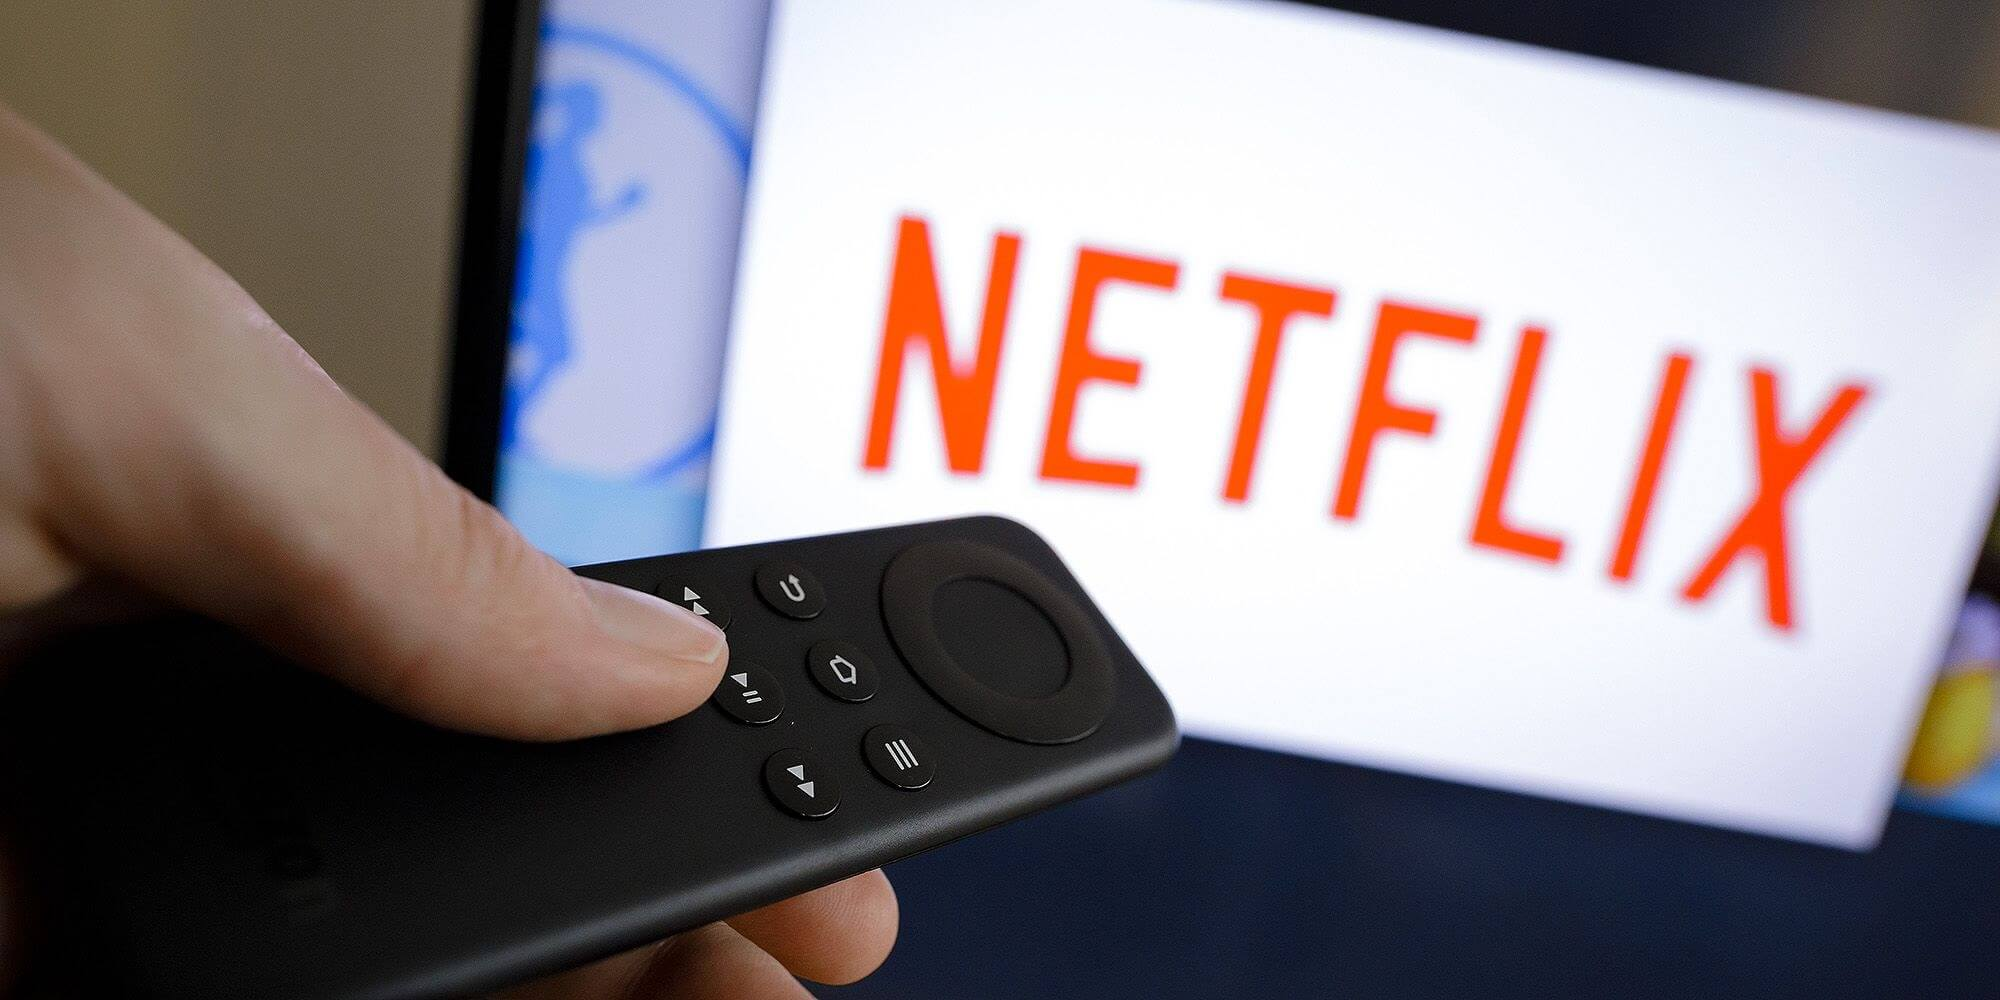 Netflix is winning in the battle for online streaming supremacy